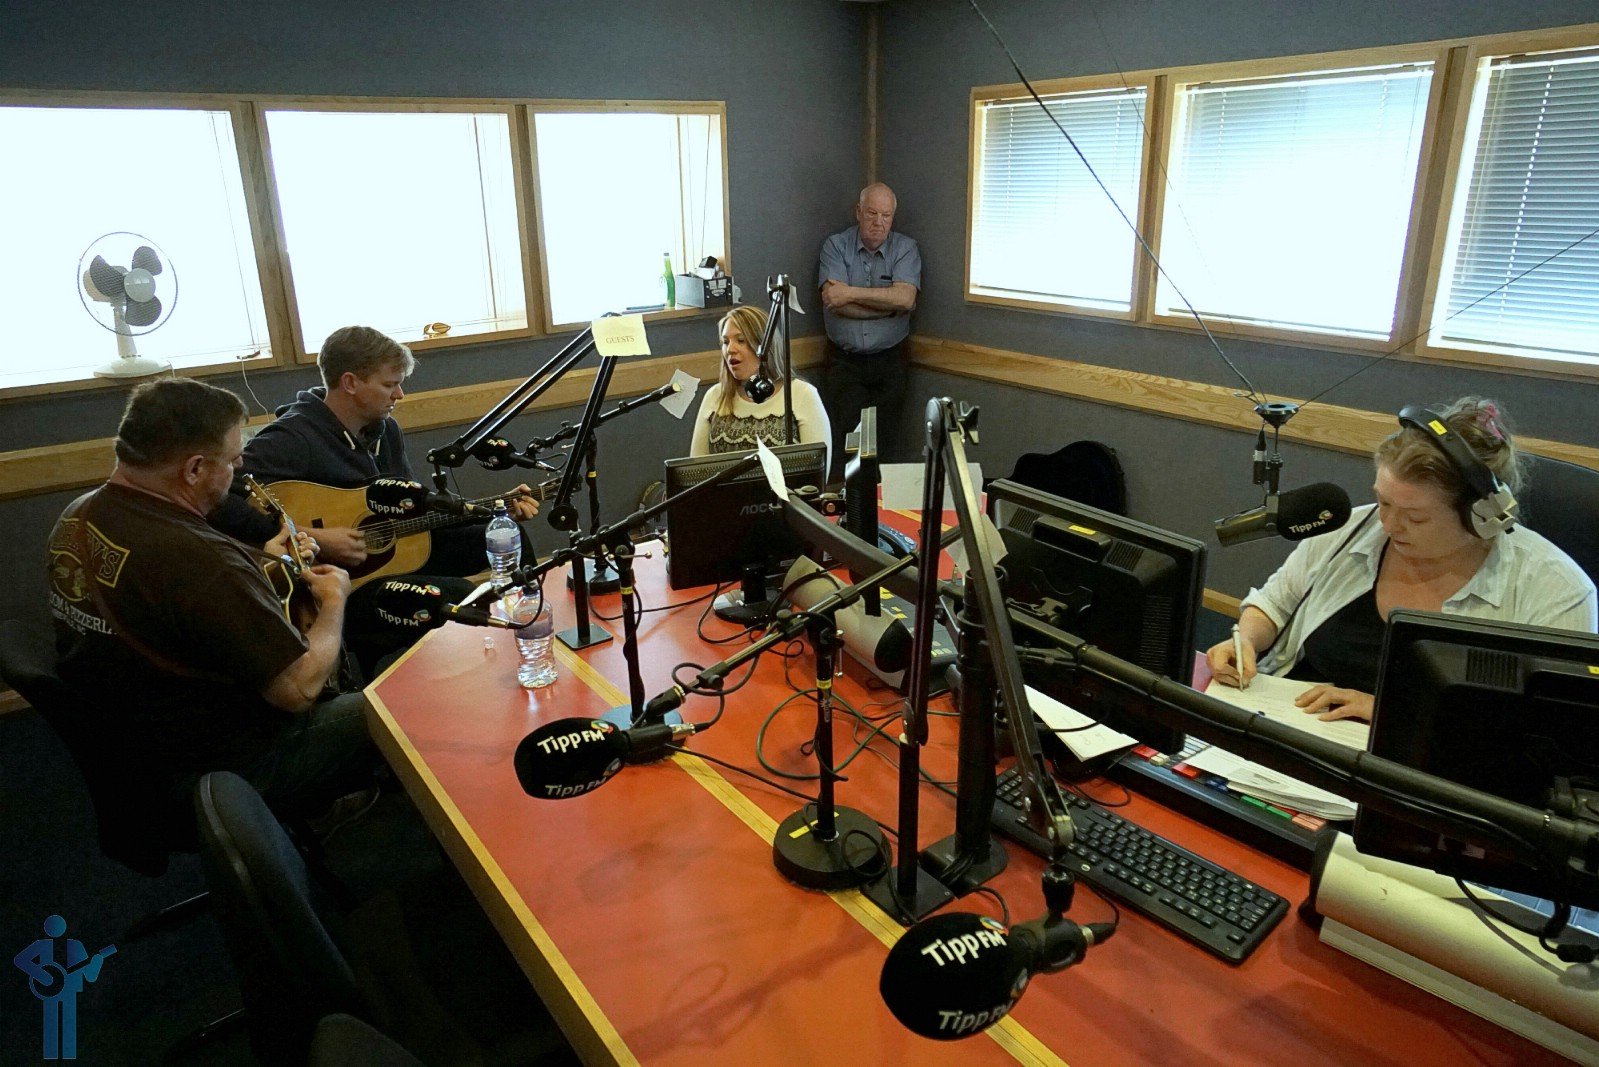 Performing in the Tipp FM studio in Clonmel, Co. Tipperary. May 13, 2019.